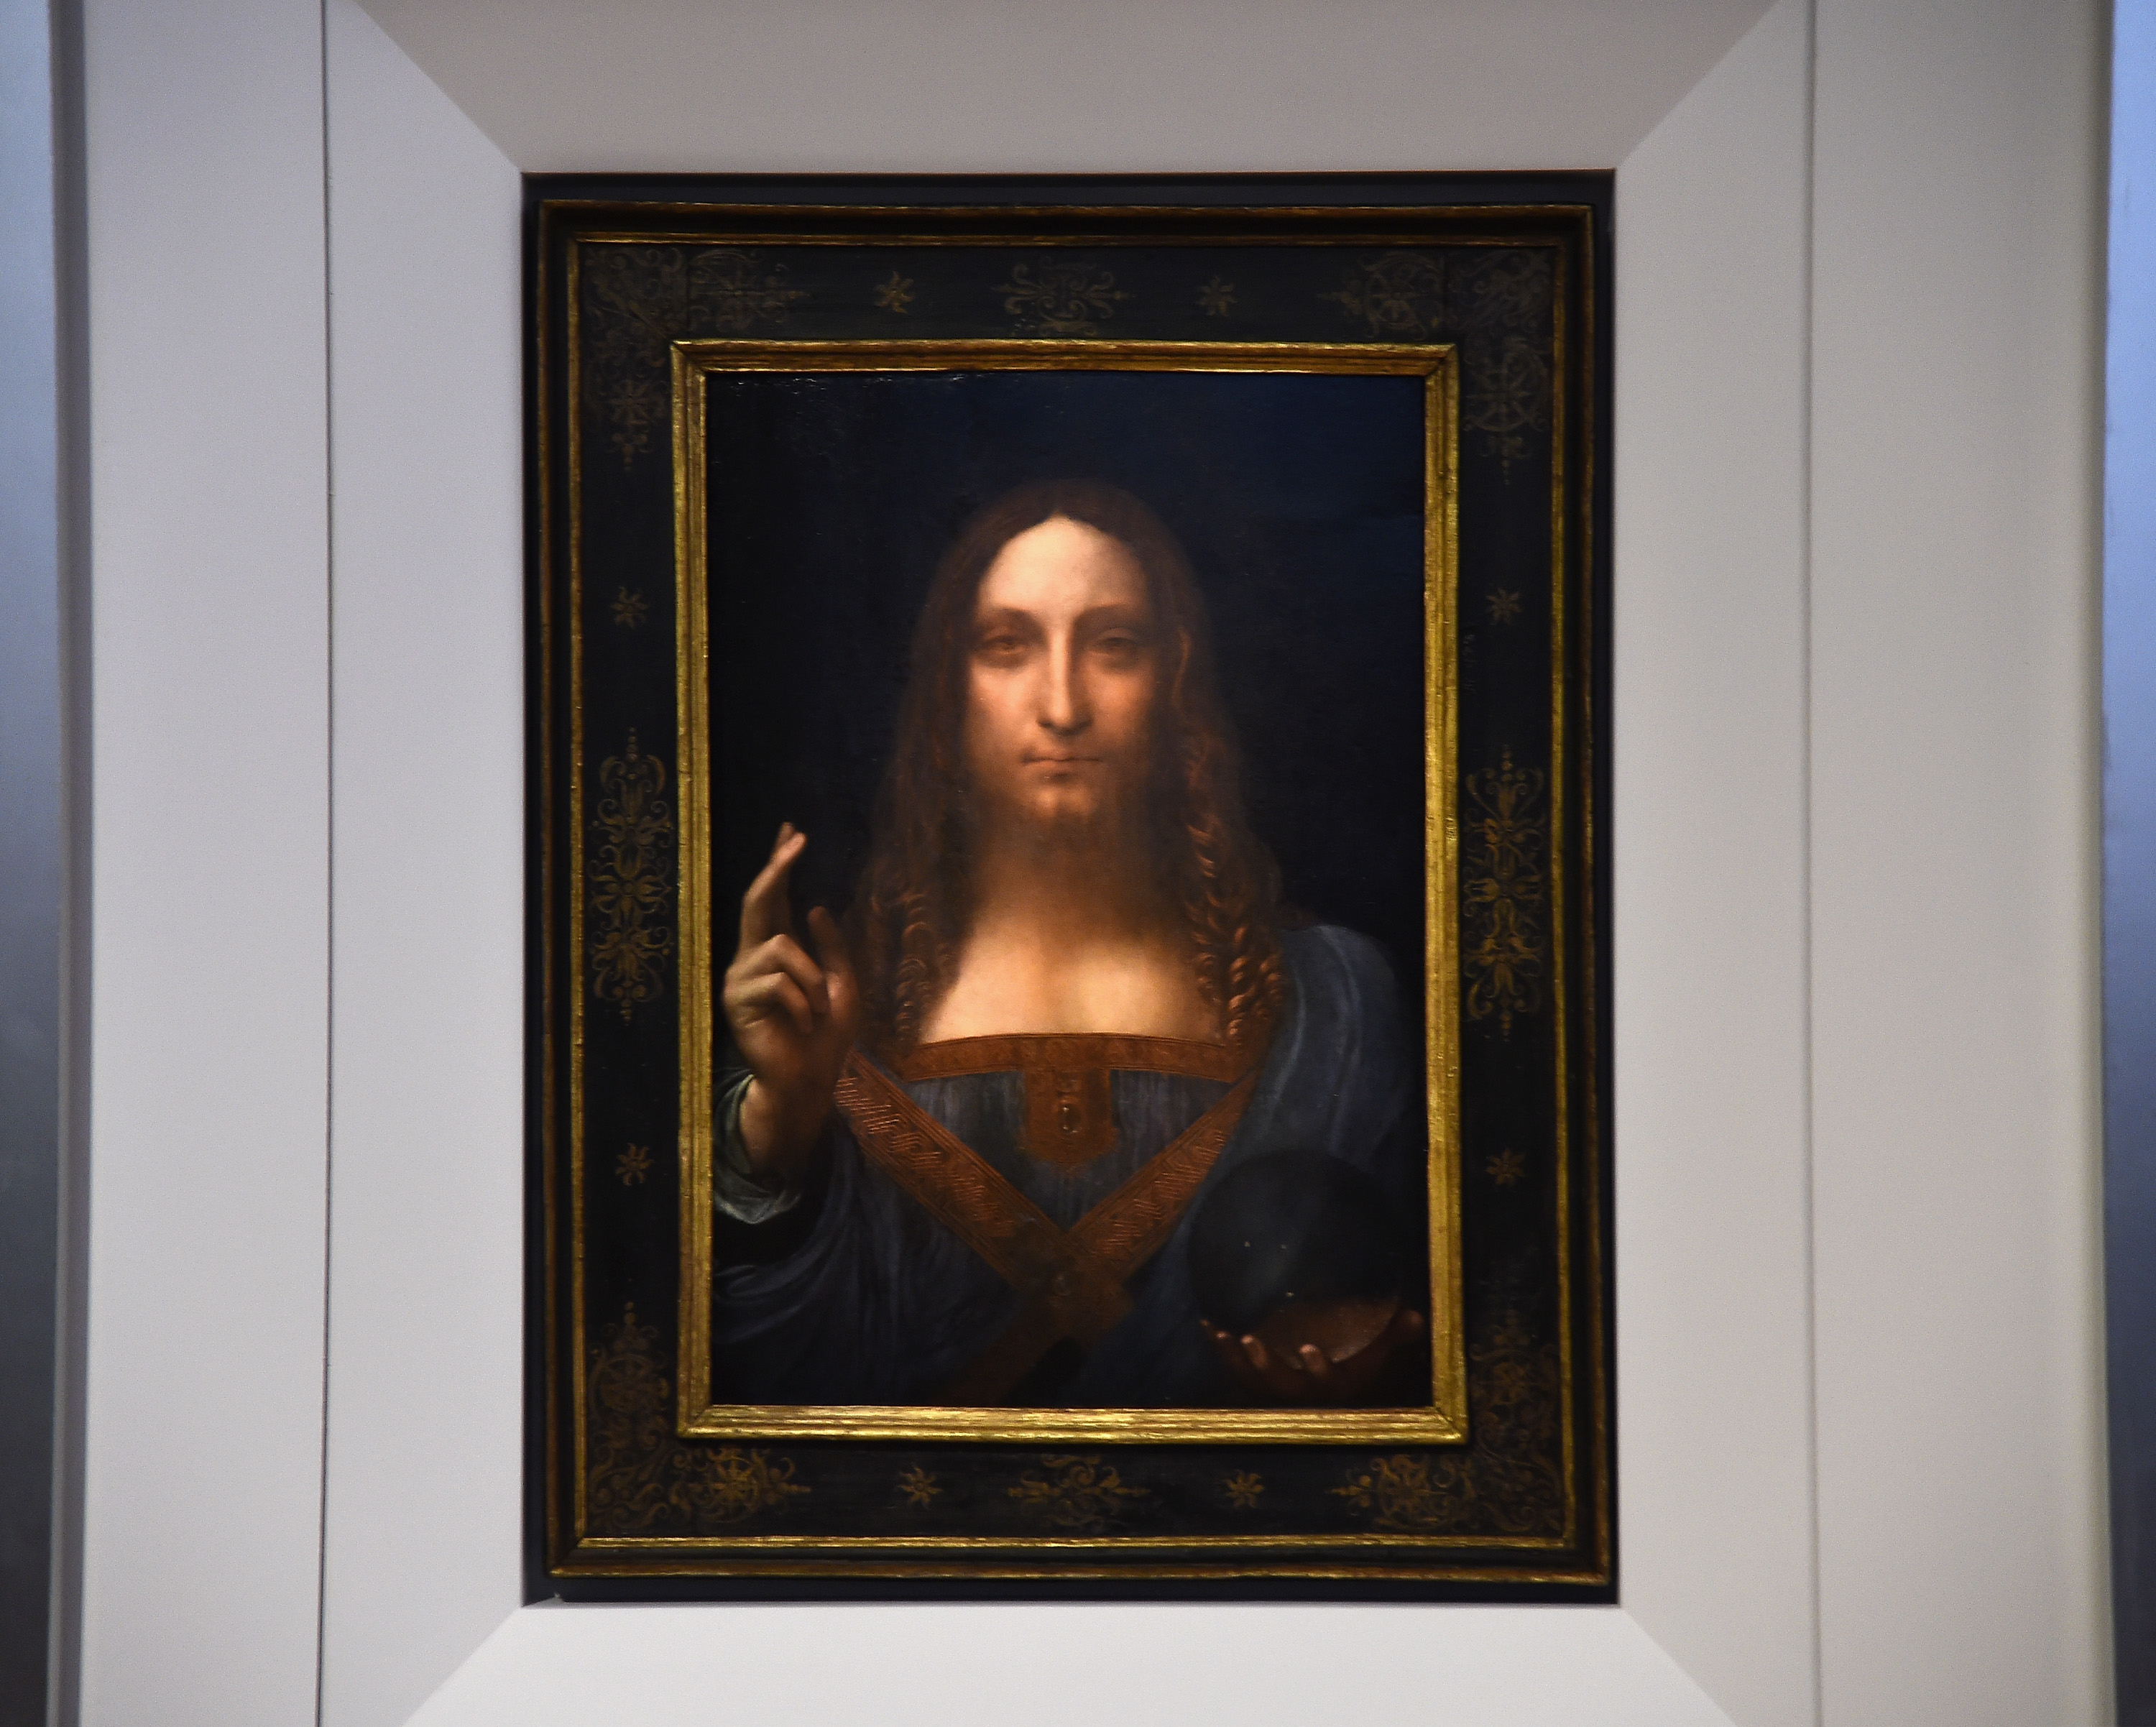 Experts suggest the painting was done by one of Leonardo's assistants (Source: Ilya S. Savenok/Getty Images for Christie's Auction House)